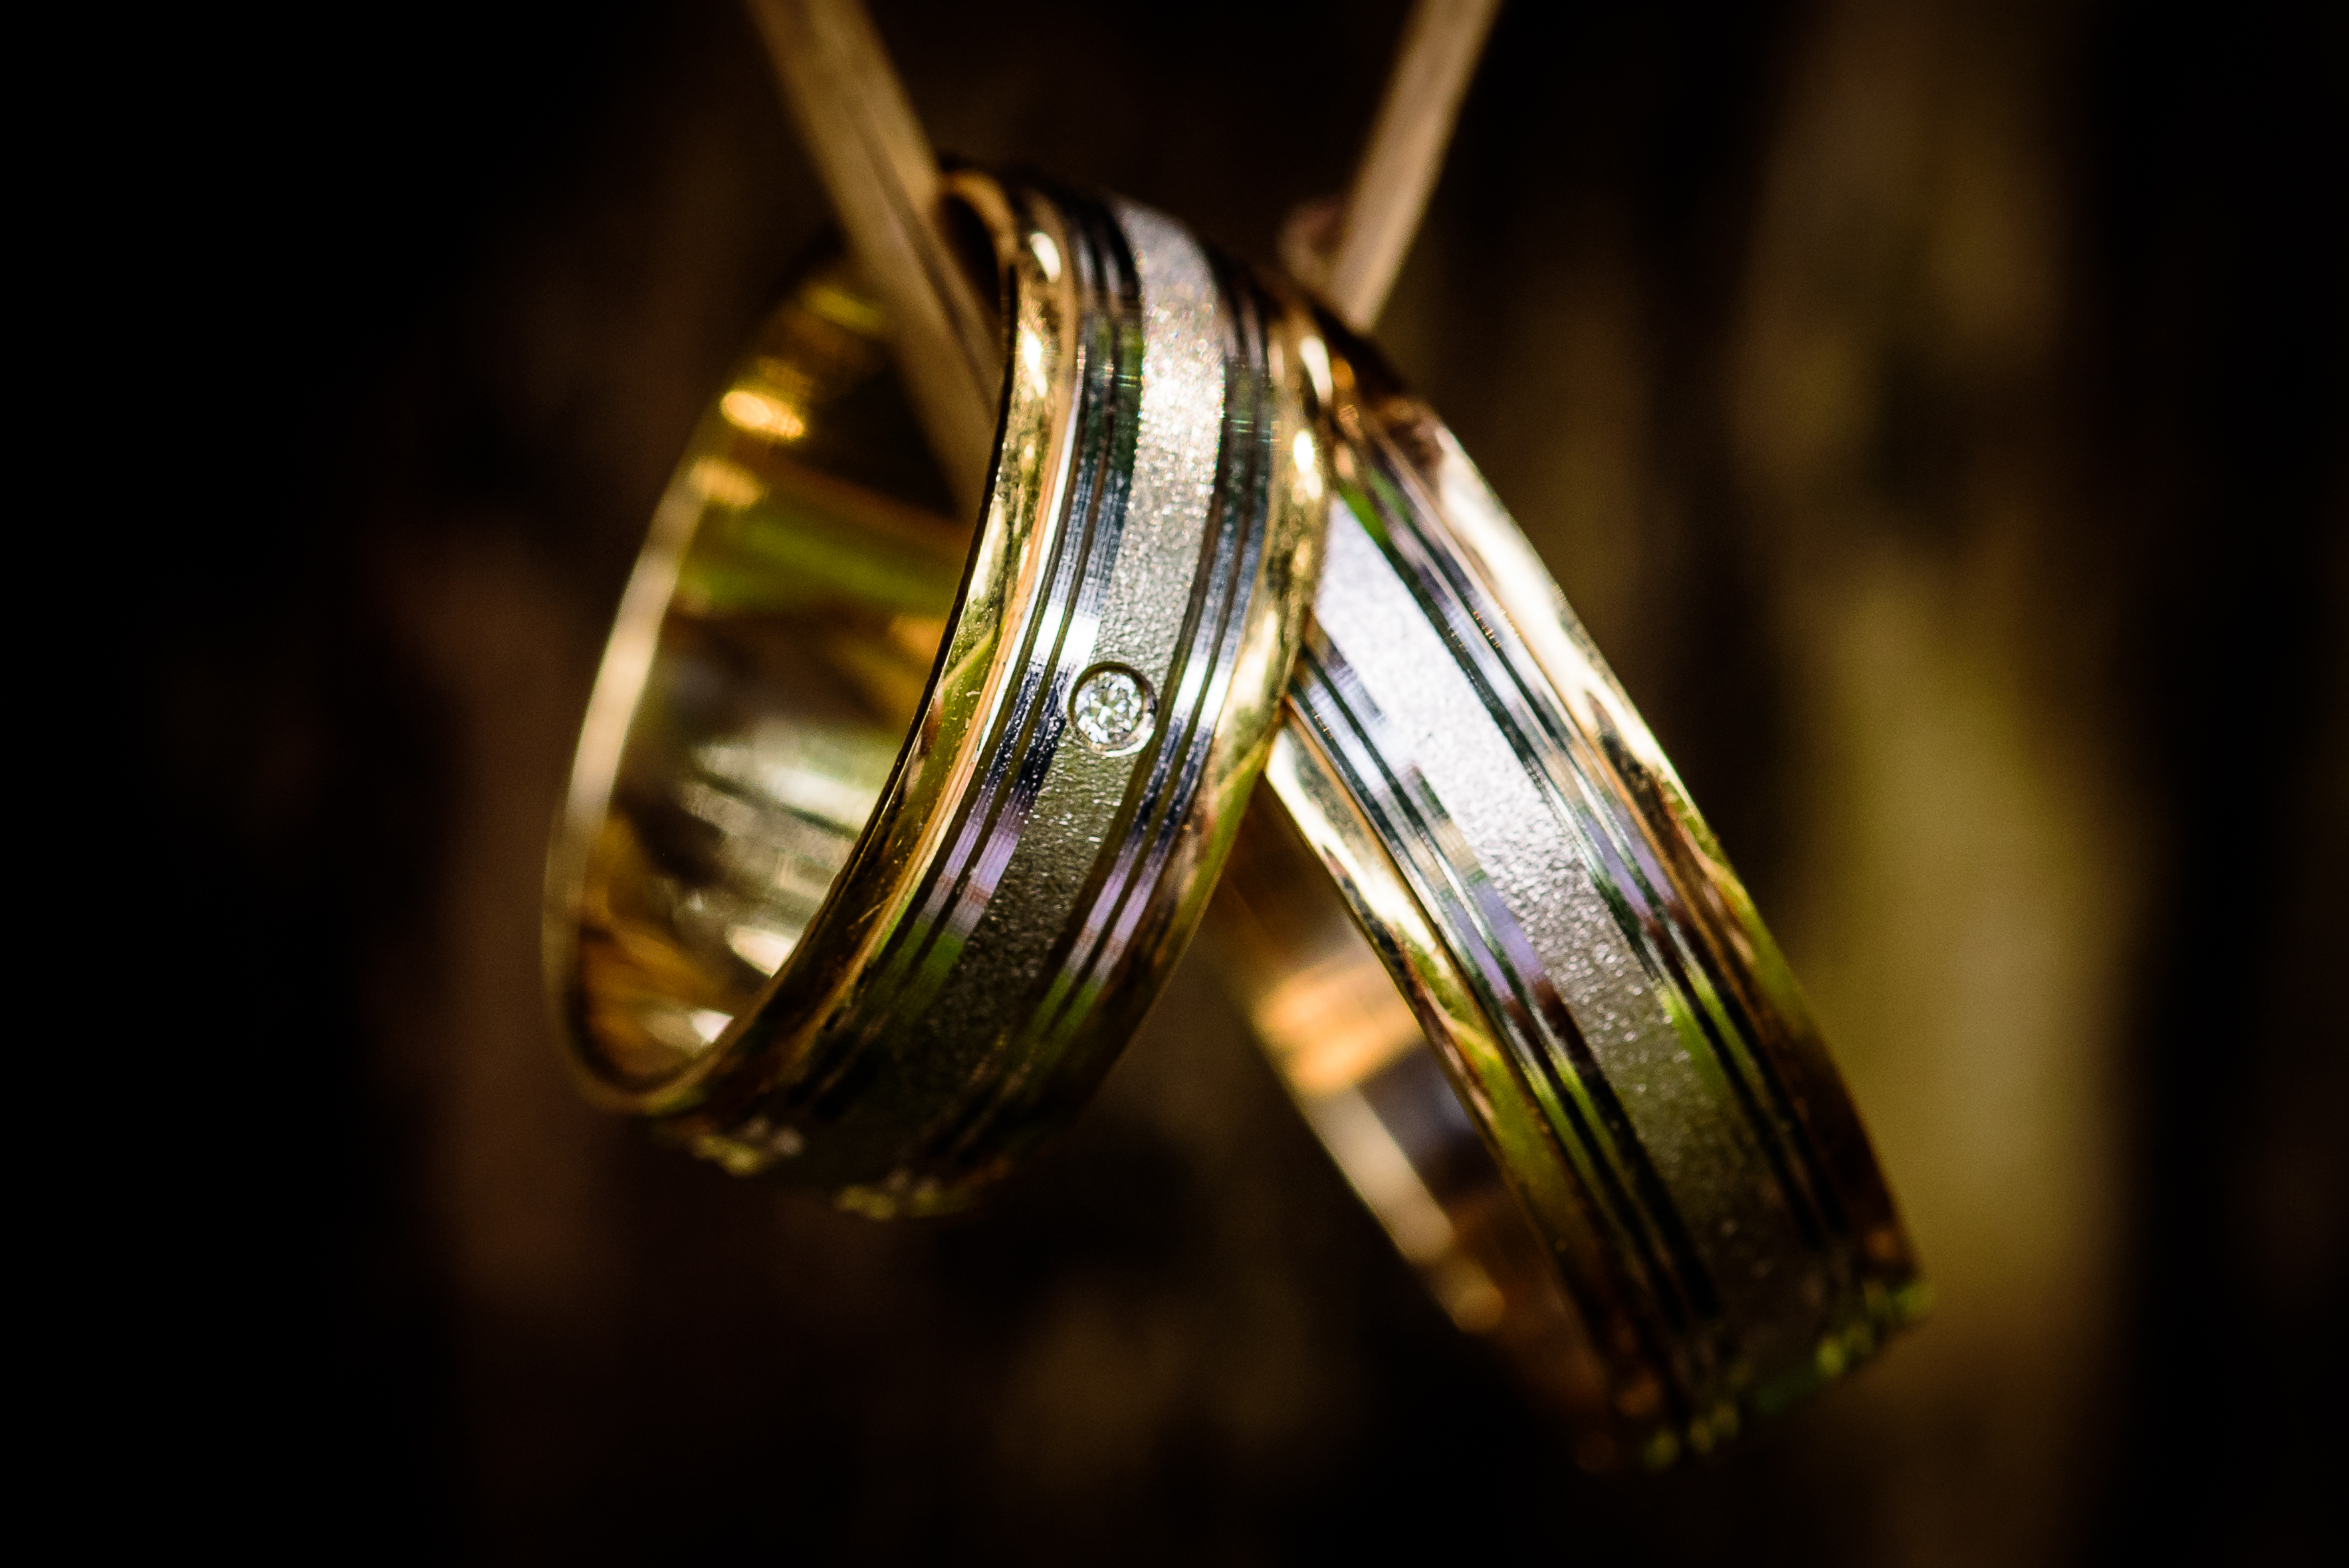 Silver and Gold Couple Ring · Free Stock Photo